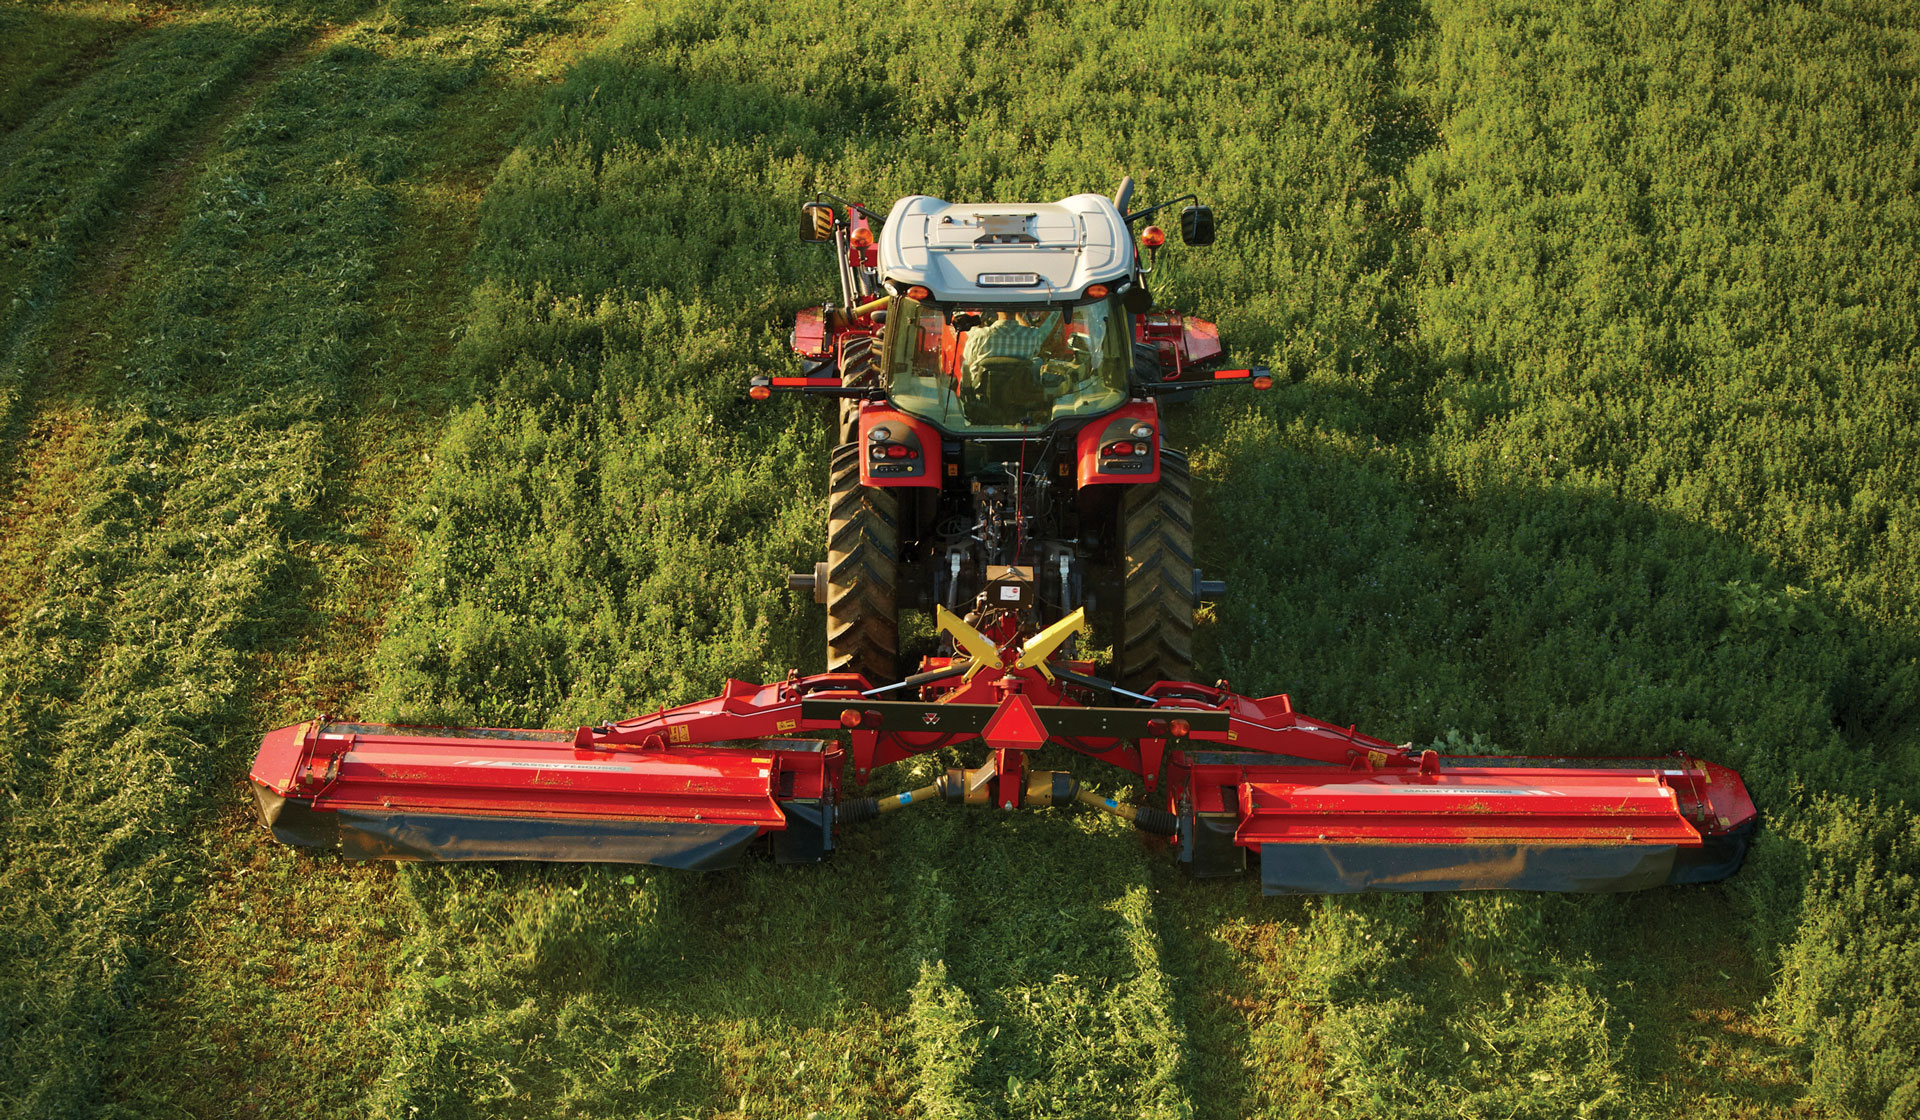 A Massey Ferguson DM series triple mower cuts through high grass in a field.